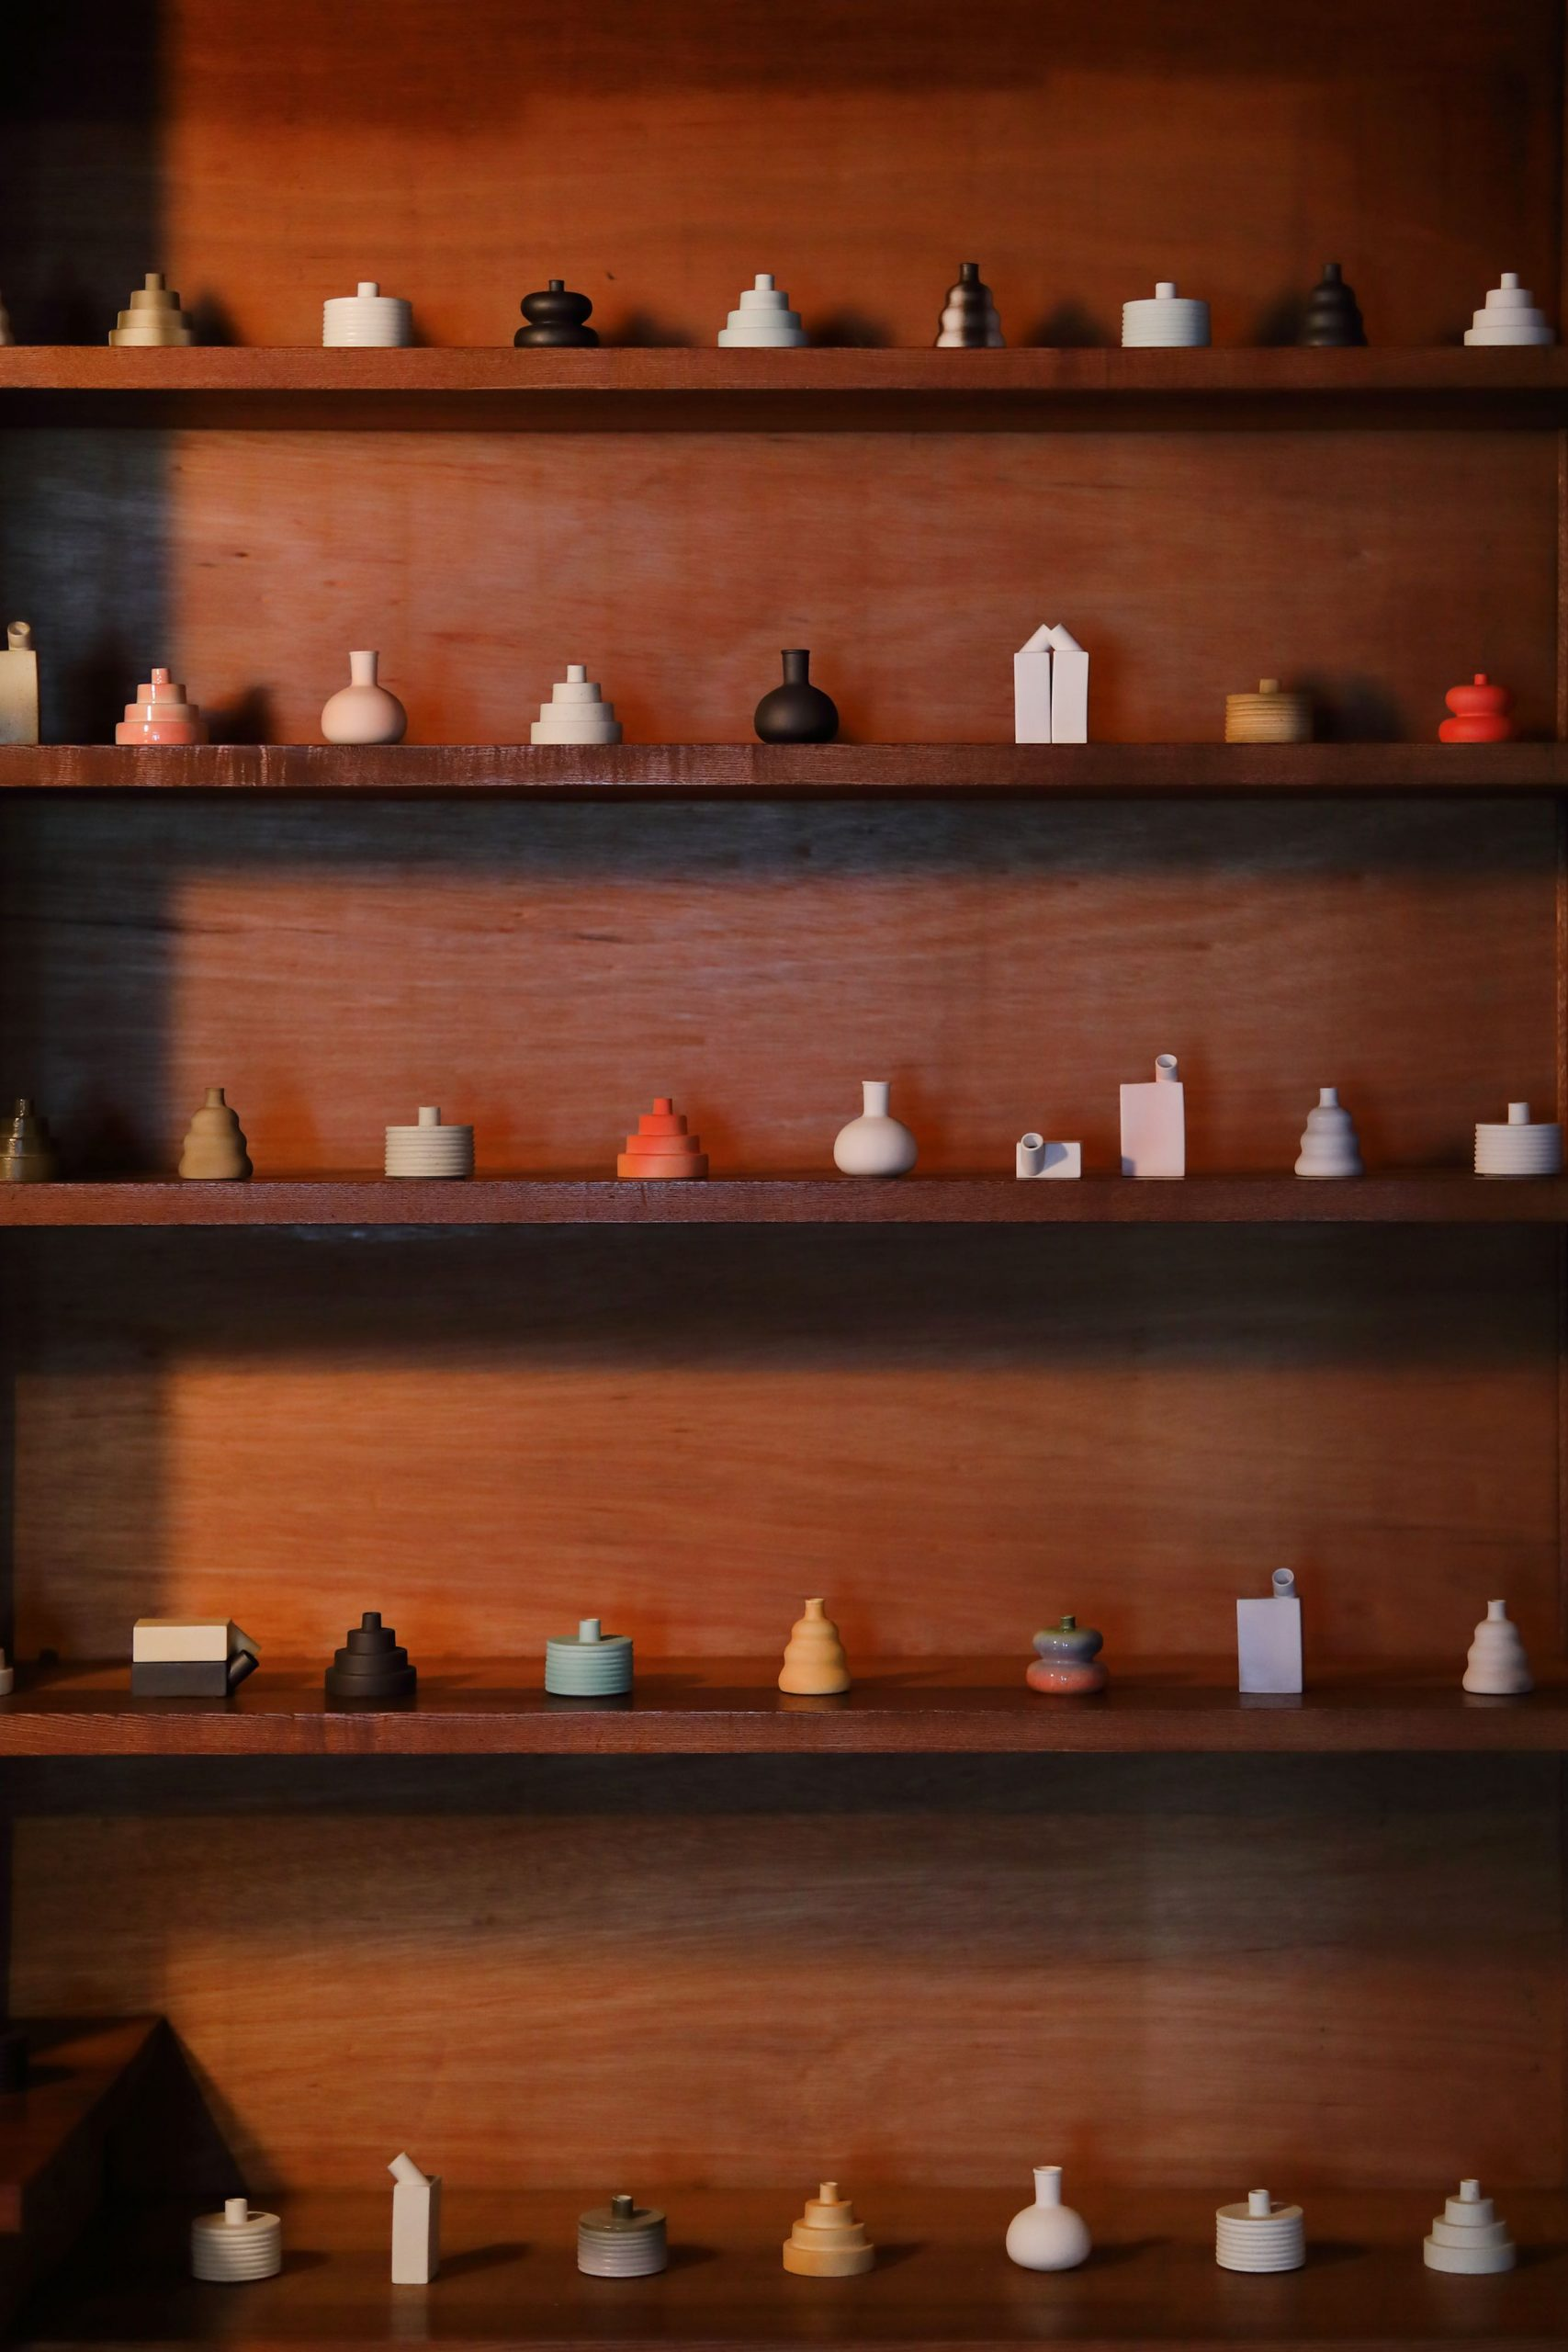 a shelf stacked with small ceramic objects.